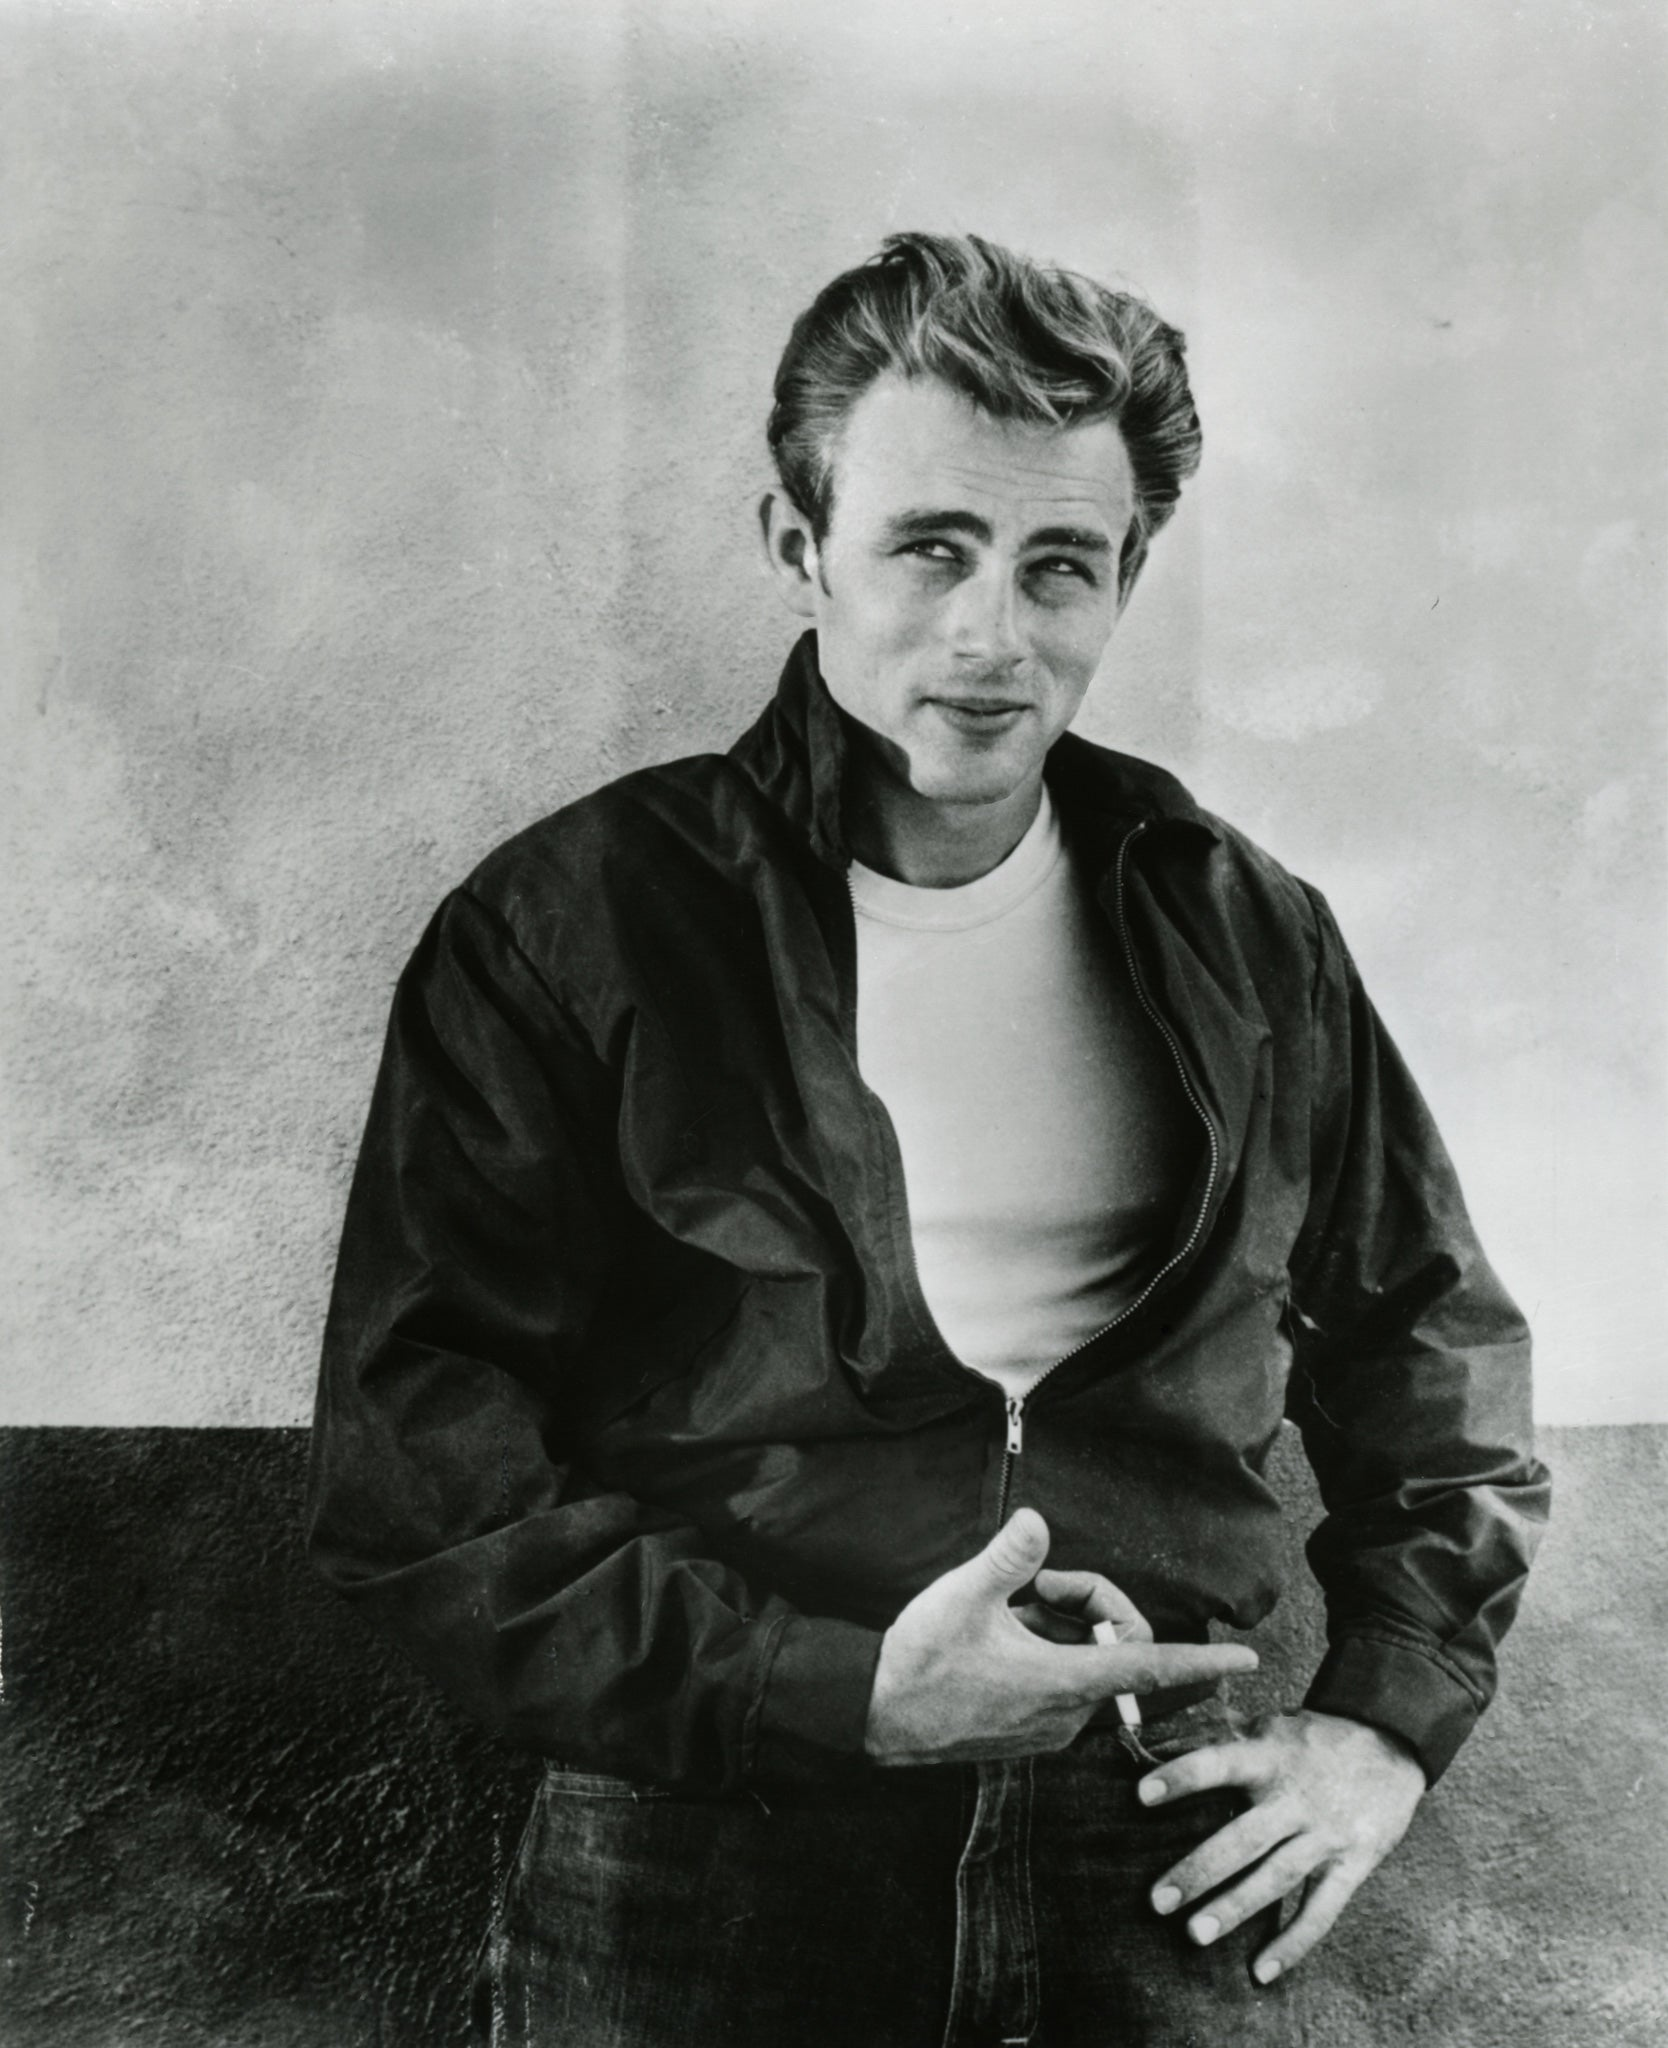 James Dean Rebel Without A Cause 1955  Photography -2612